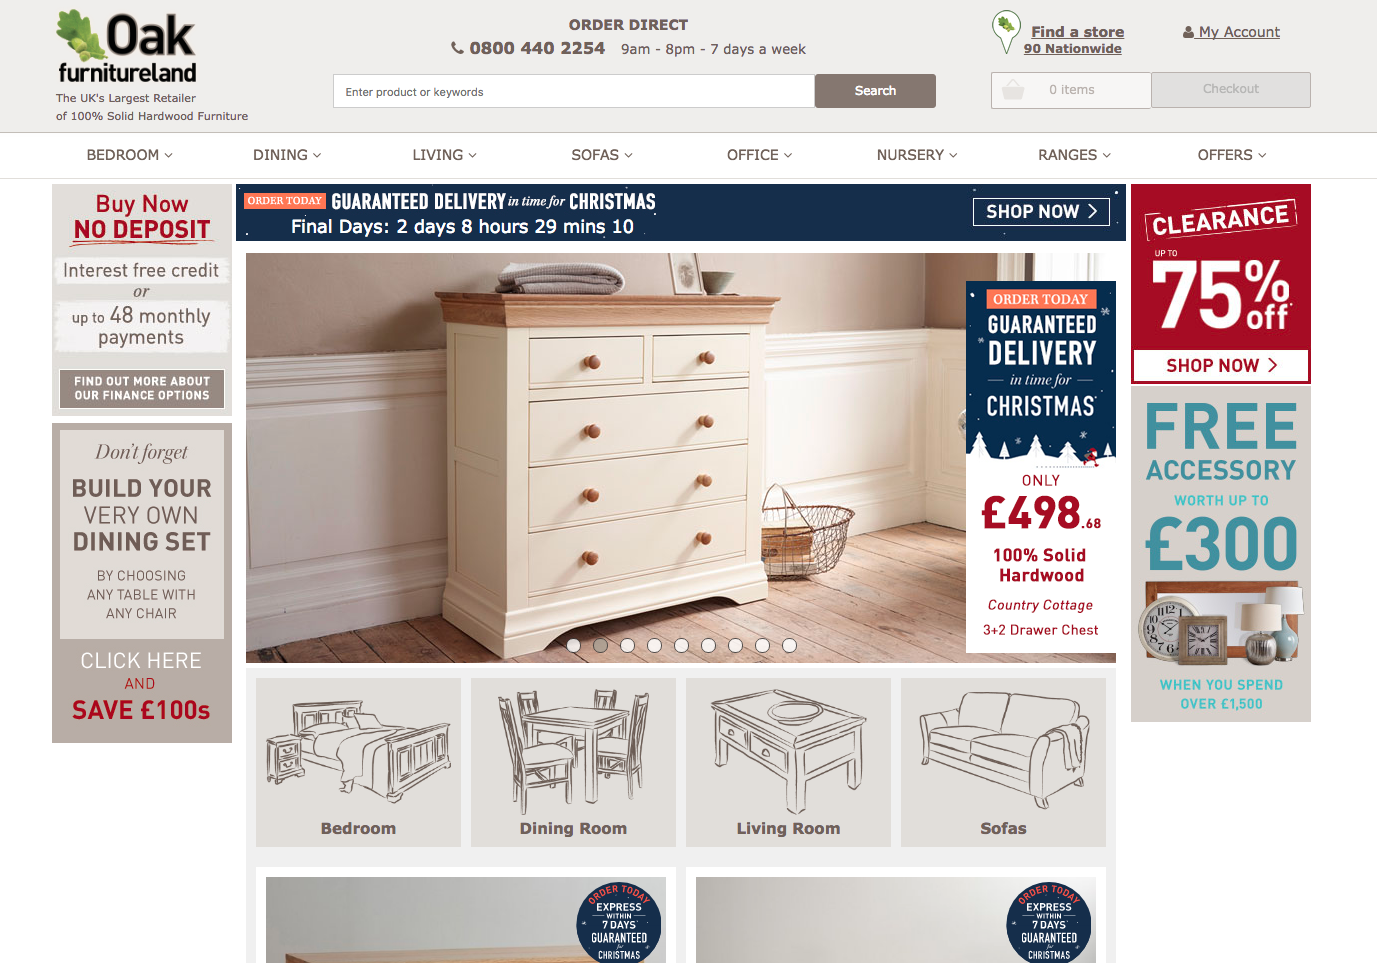 Oakfurnitureland homepage